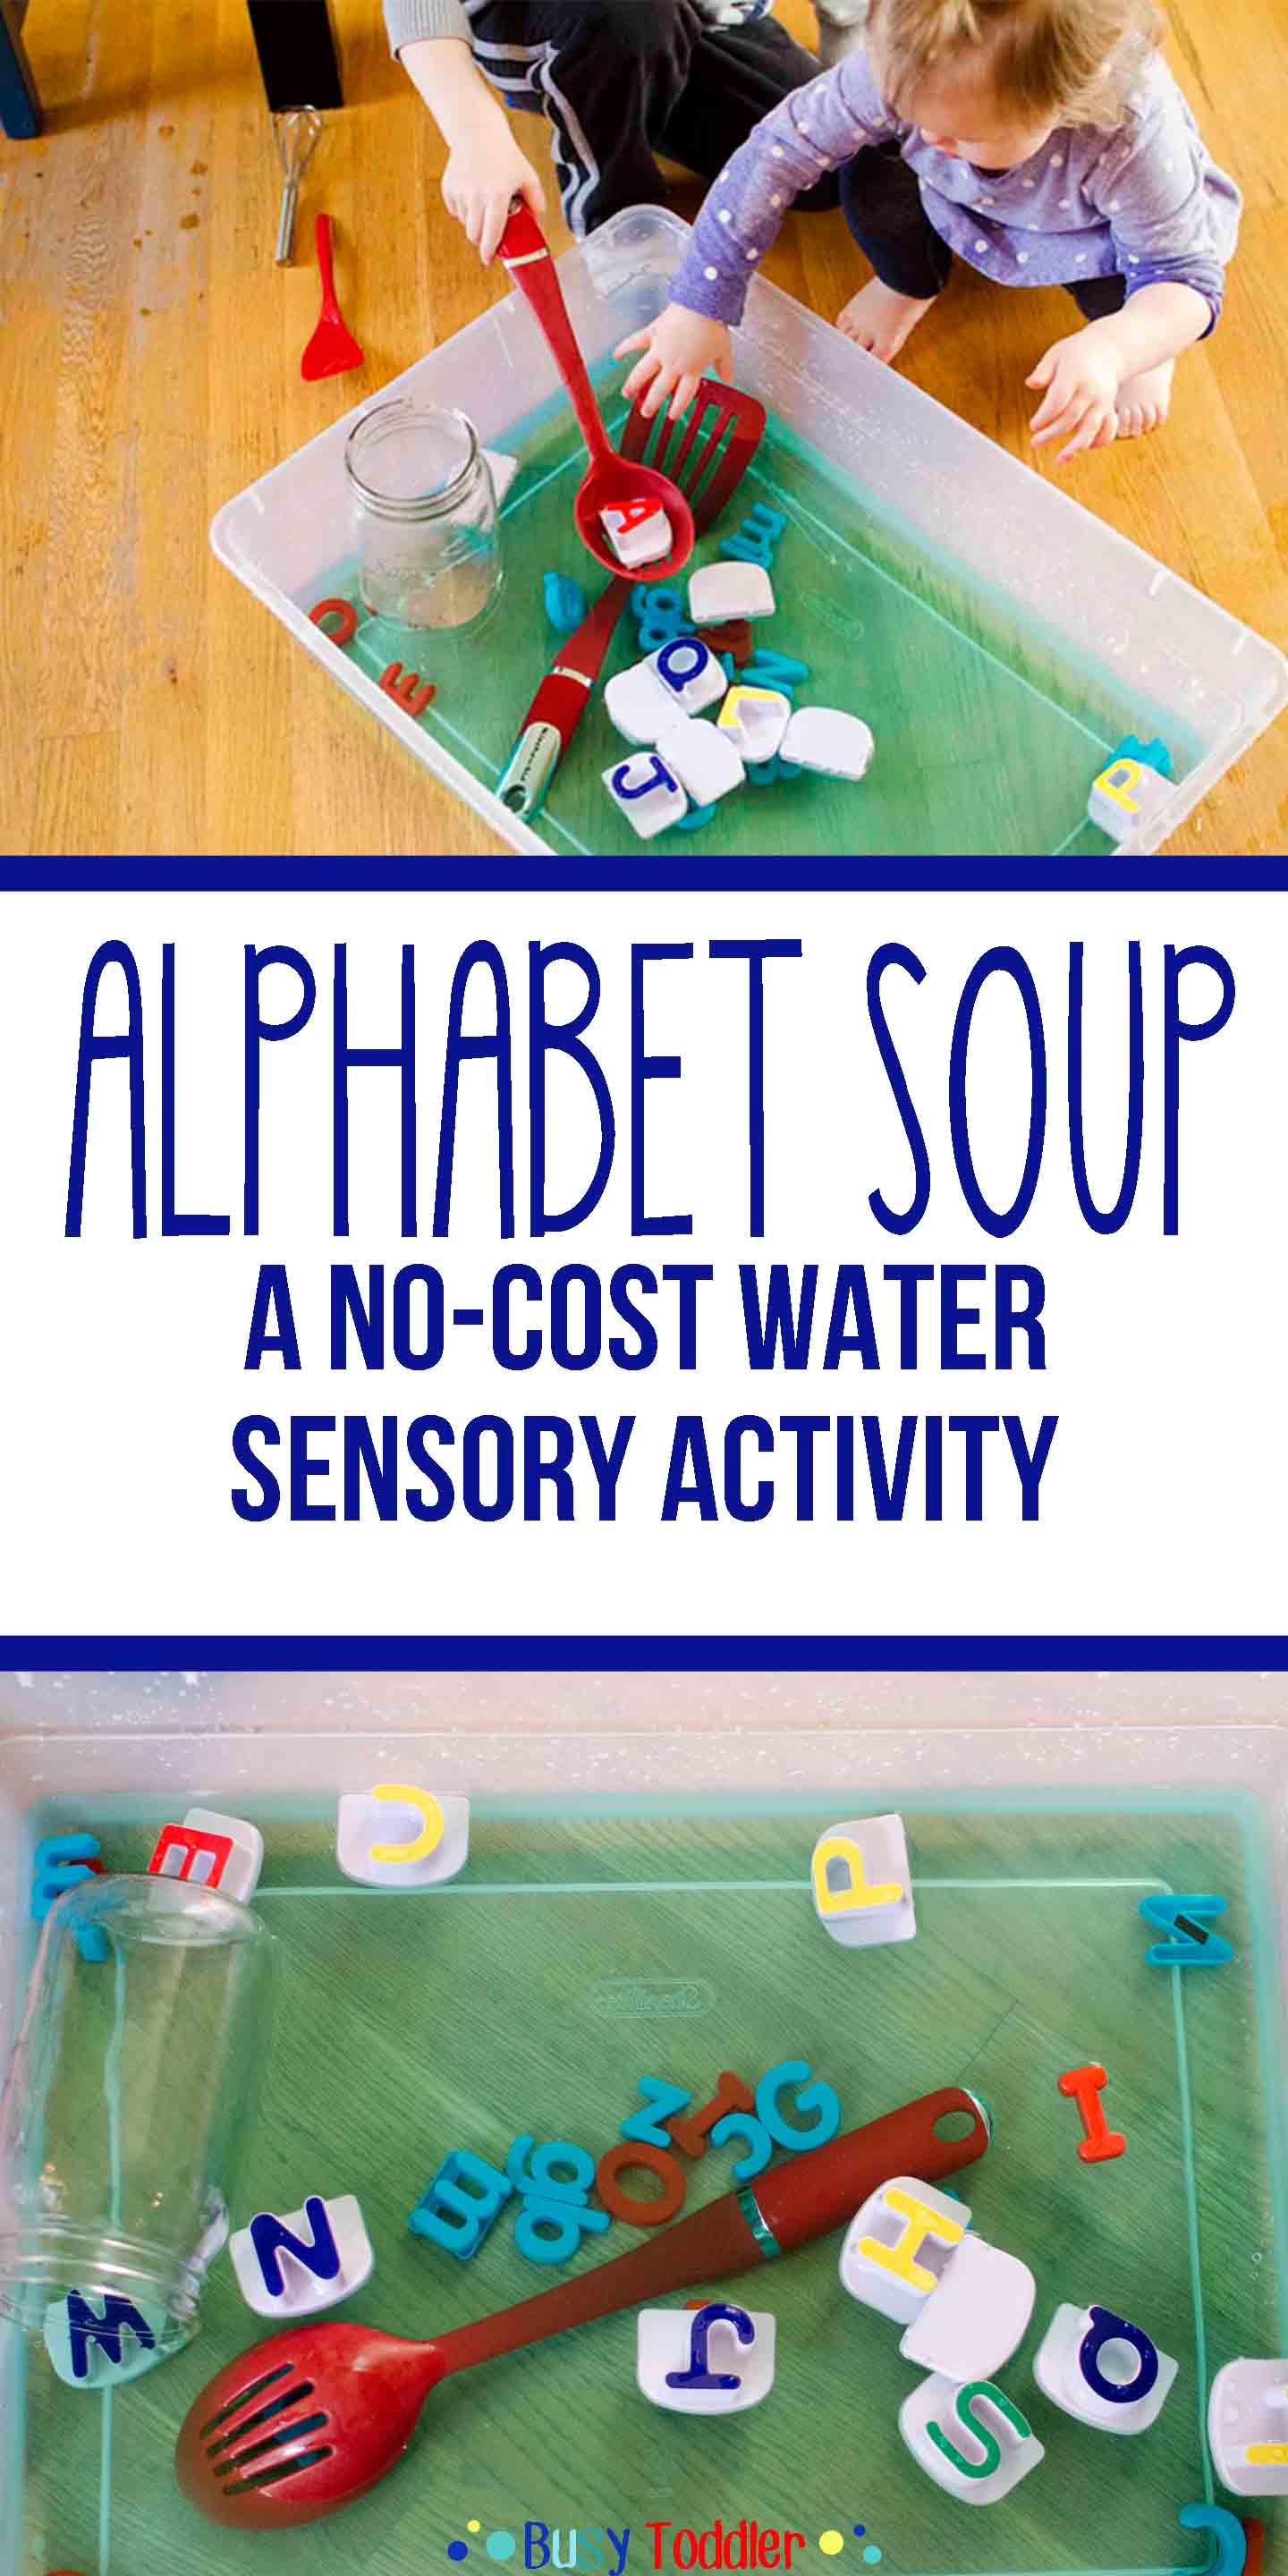 ALPHABET SOUP: A nno-cost, high fun toddler activity. A water based sensory activity for babies, toddlers, and preschoolers.